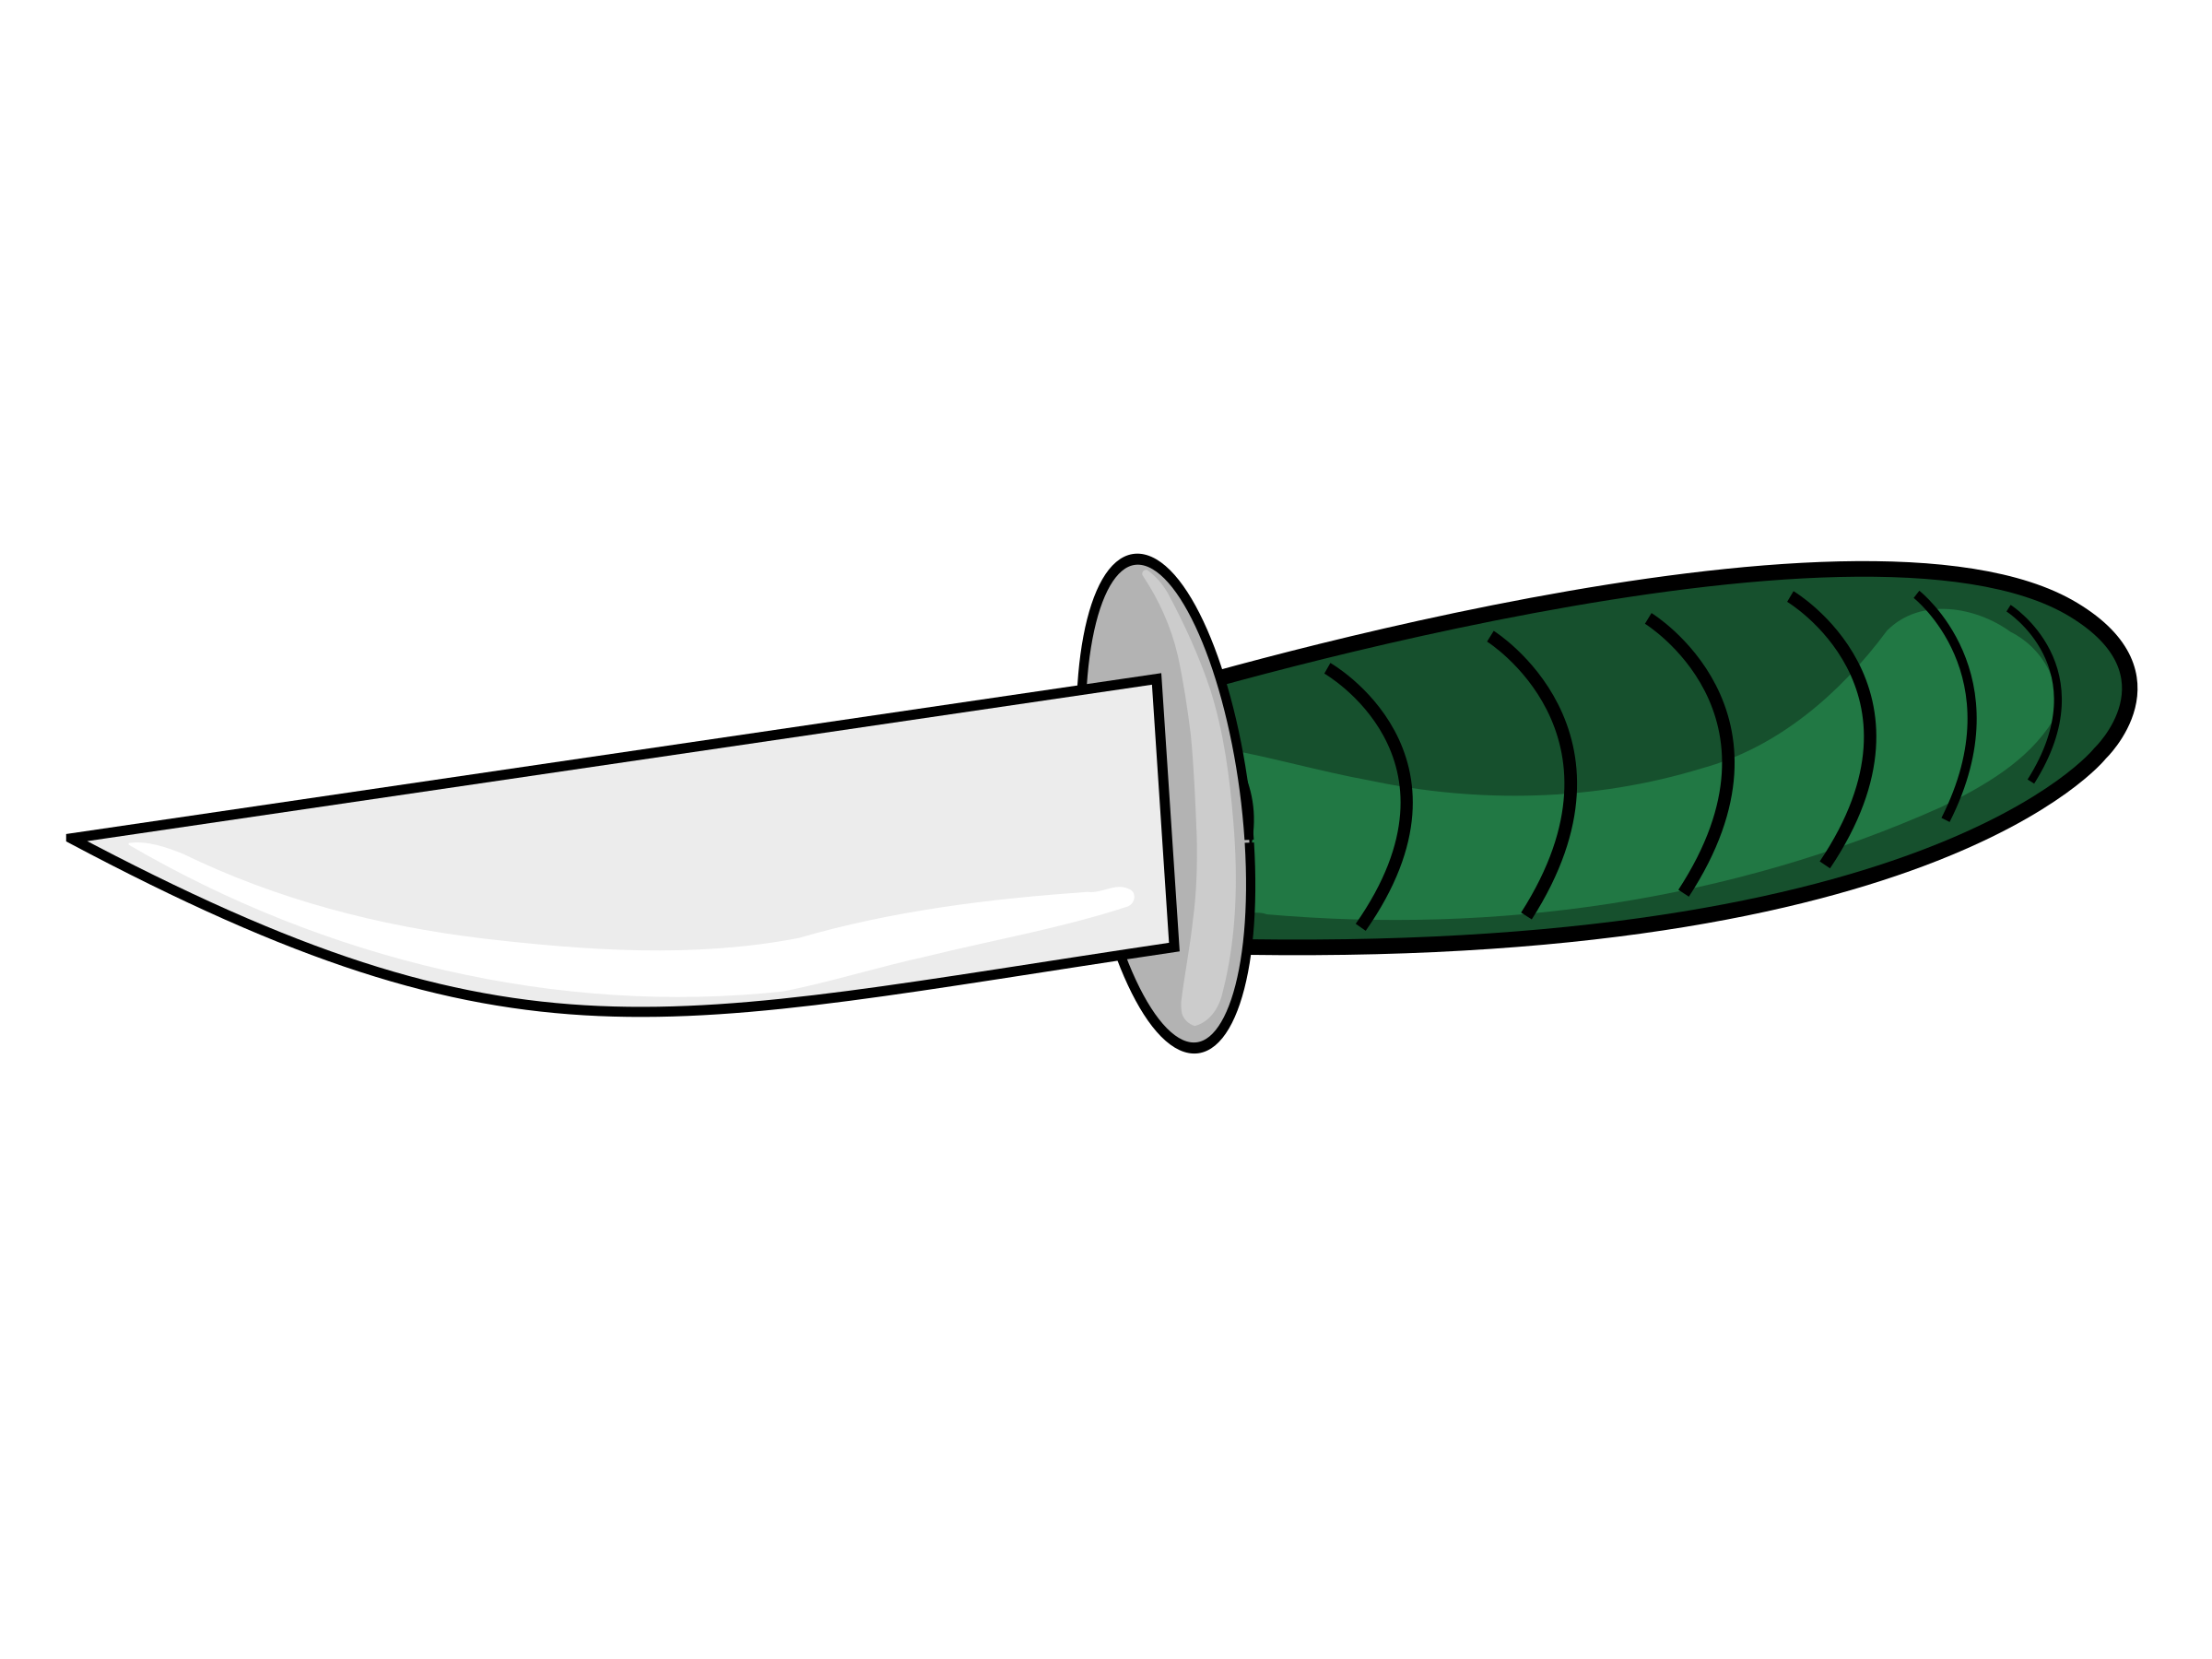 Couteau clipart vector transparent download Clipart a knife - Clipartable.com vector transparent download